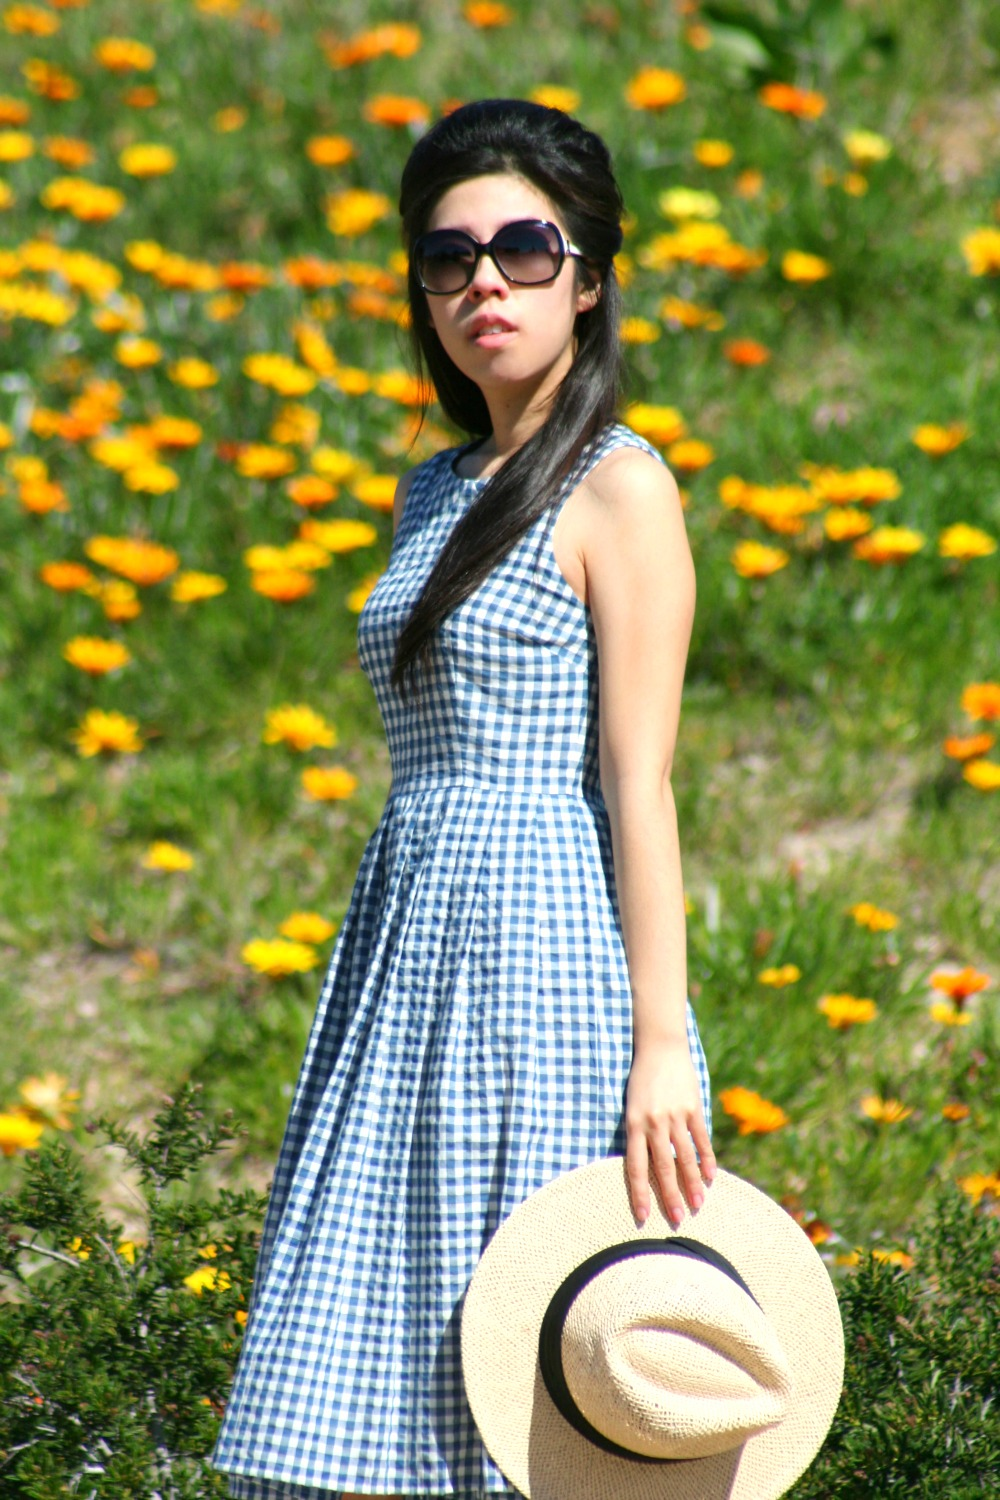 California Fashion Blogger_Orange County Fashion Blog_Adrienne Nguyen_Invictus_Spring Trends